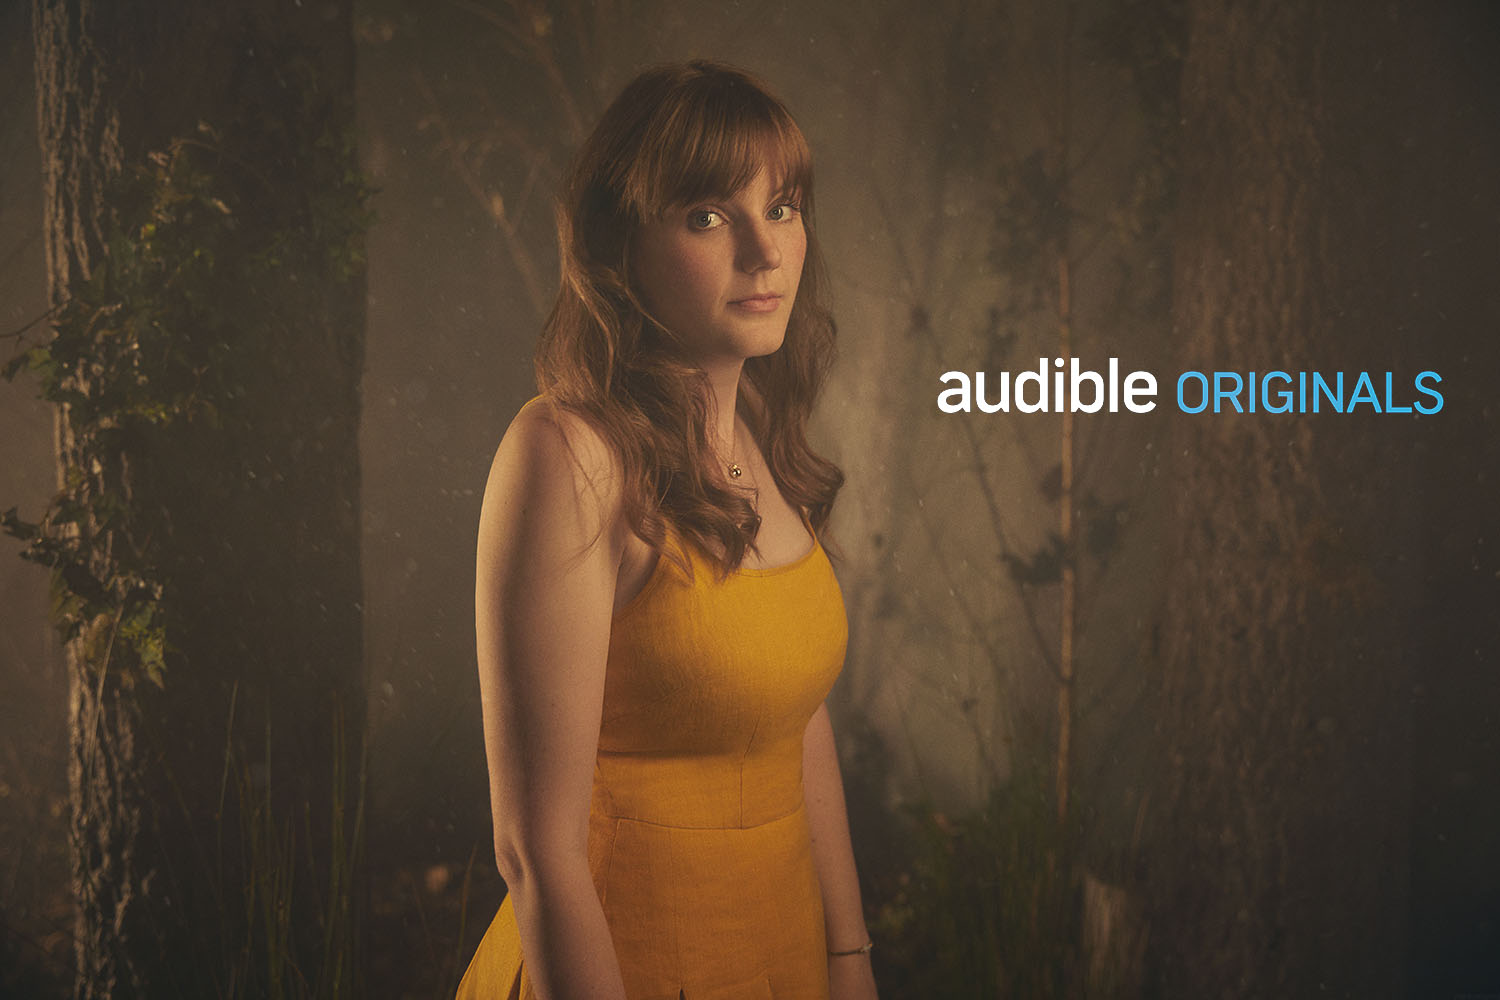 Audible Originals / HAG